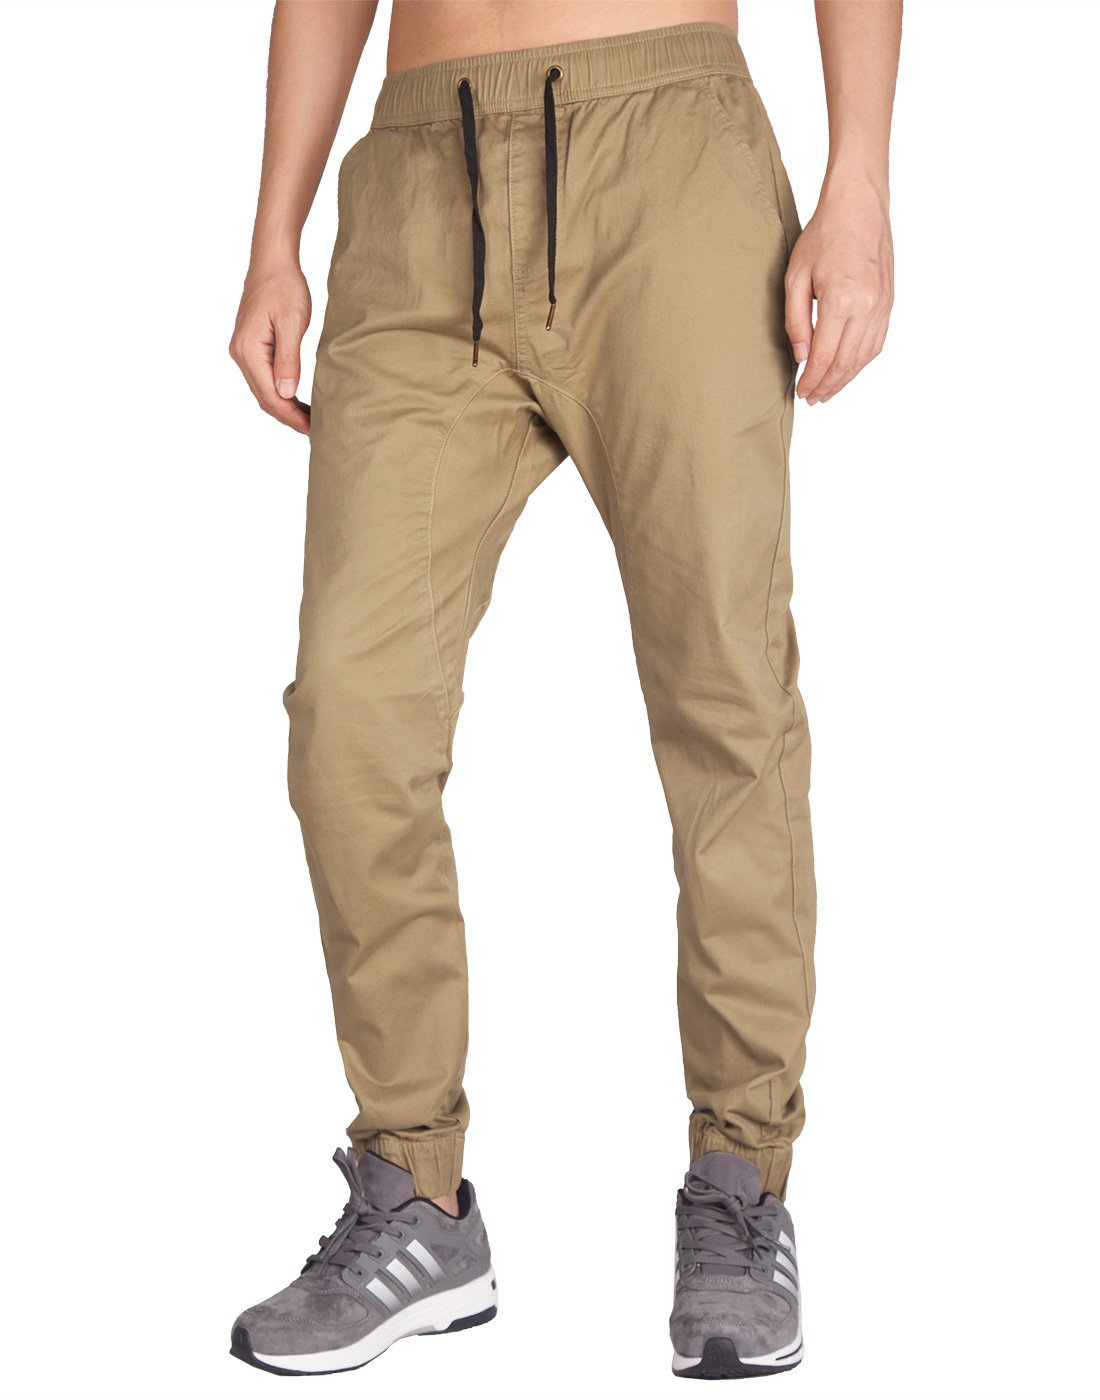 Man Drop Crotch Jogger Pants Khaki - italymorn